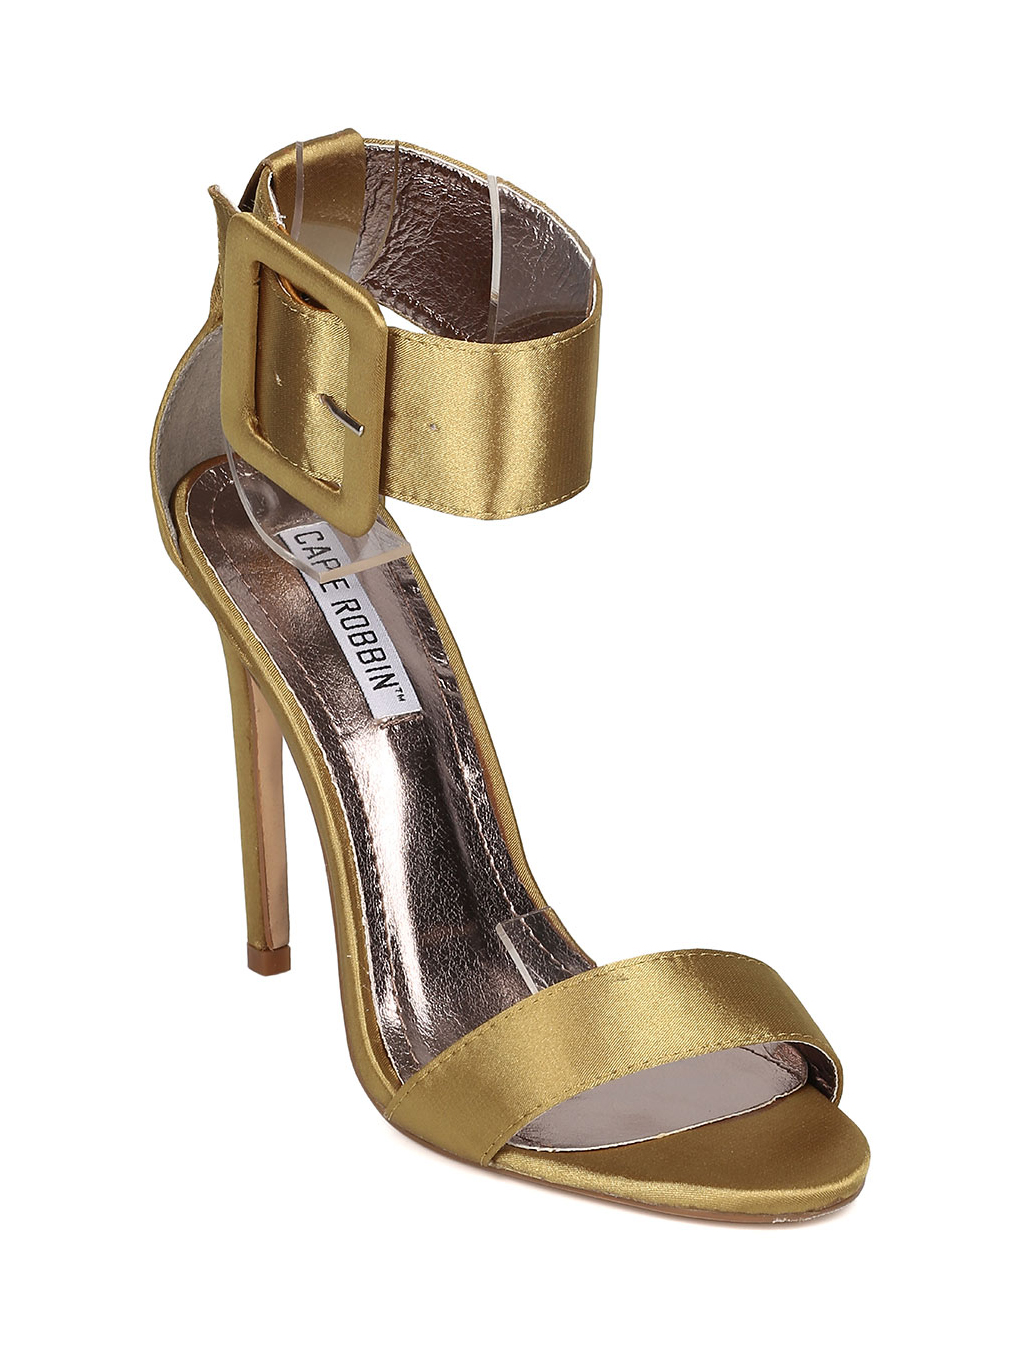 Women/'s Shoes Cape Robbin Suzzy 42 Open Toe Ankle Buckle Heel Olive *New*